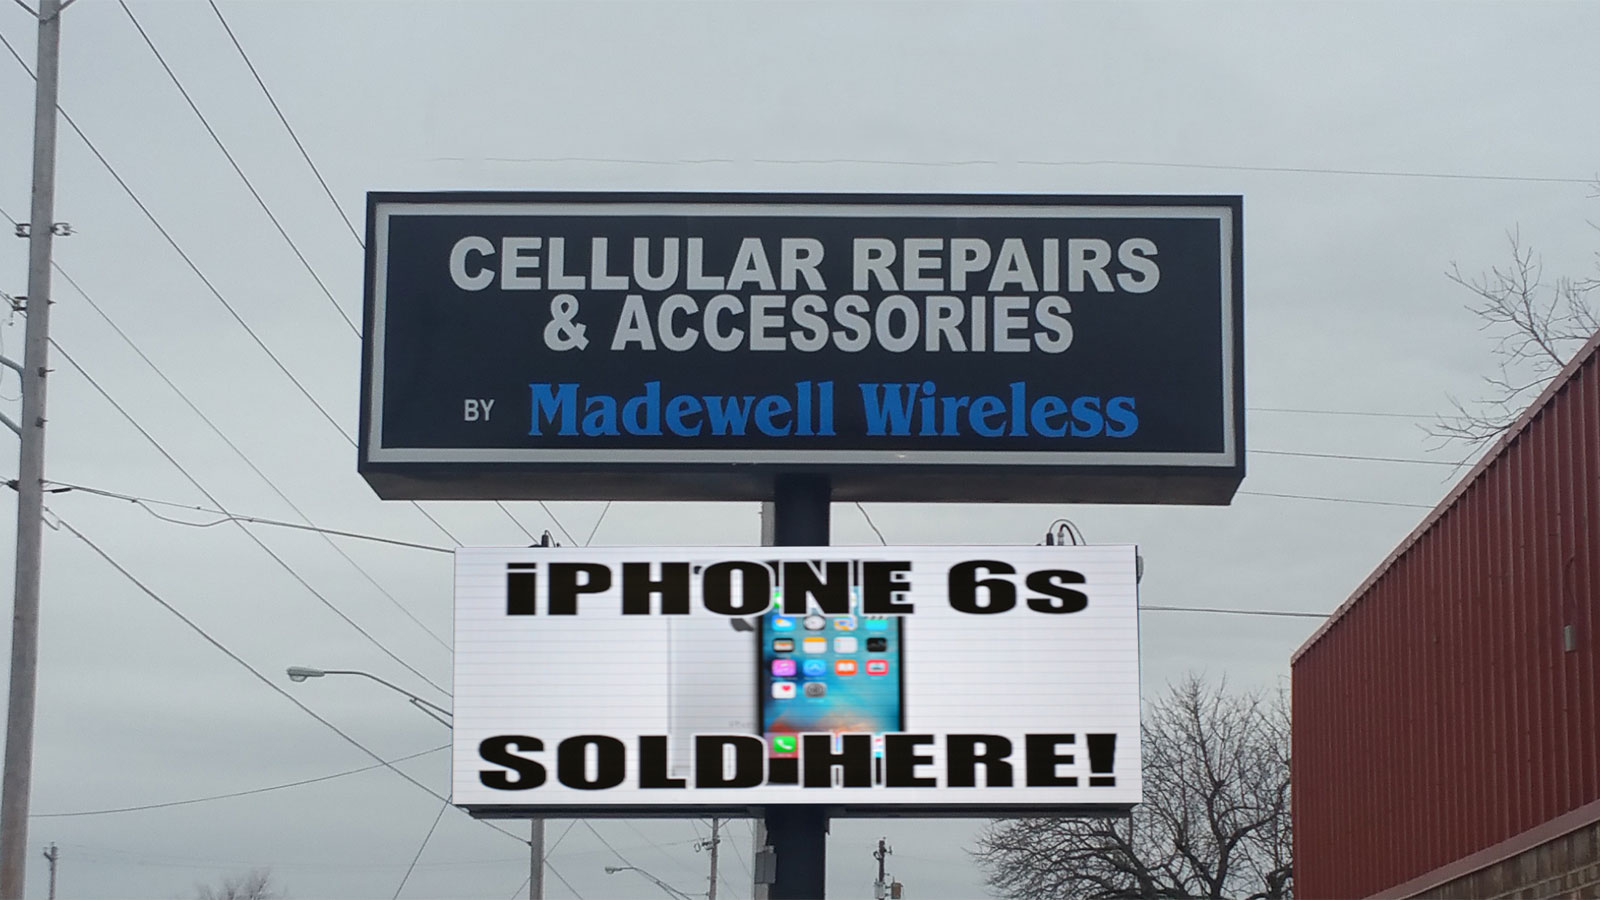 MadewellWireless